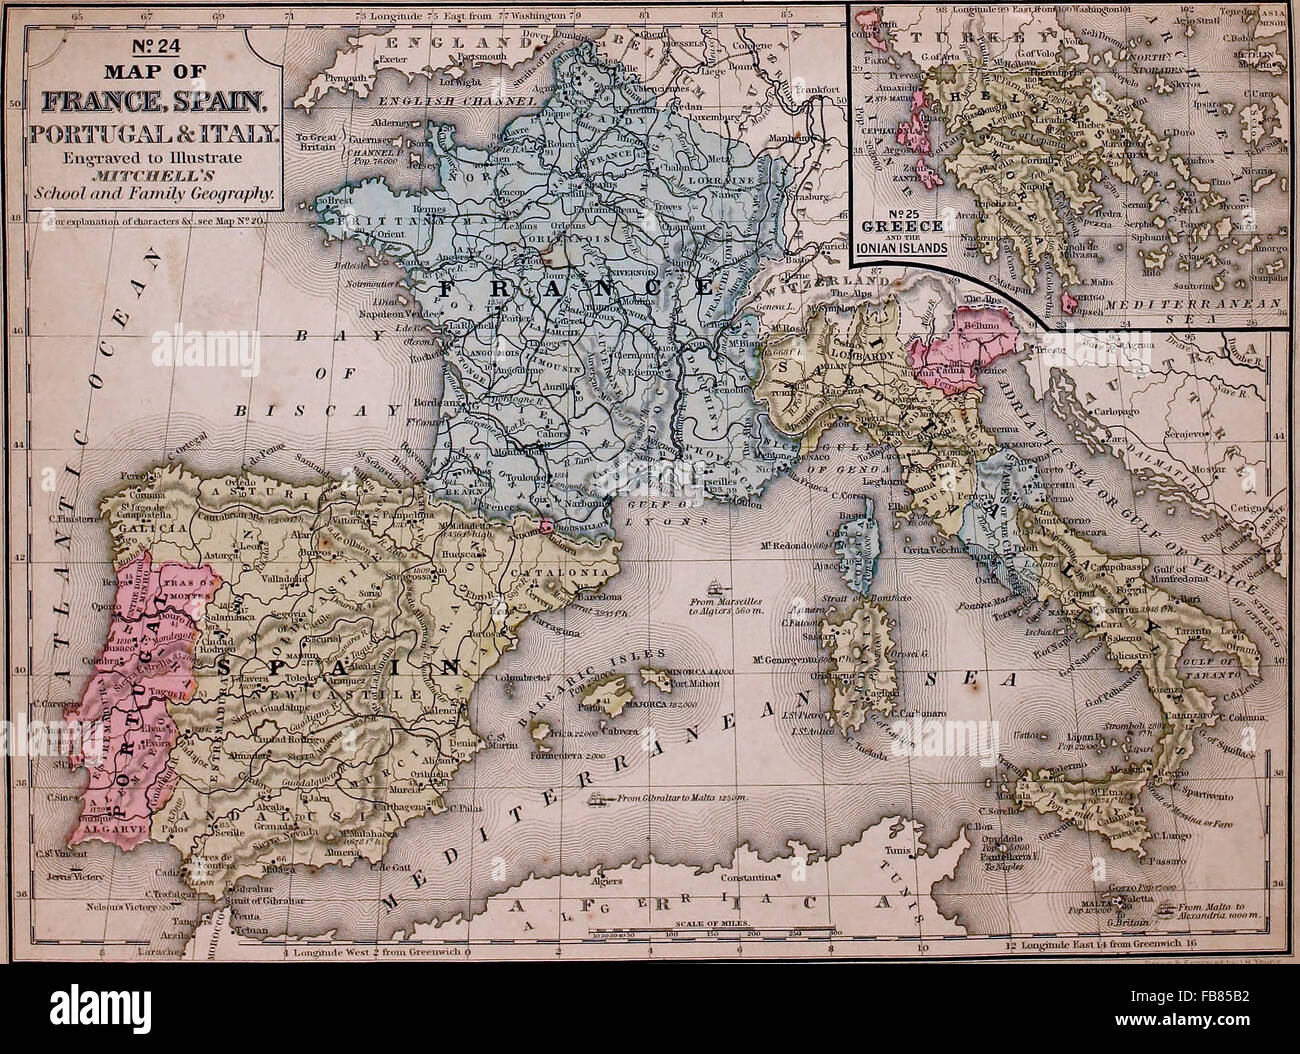 Map Of Spain Portugal And Italy.Map Of France Spain Portugal And Italy With A Greece Inset Circa